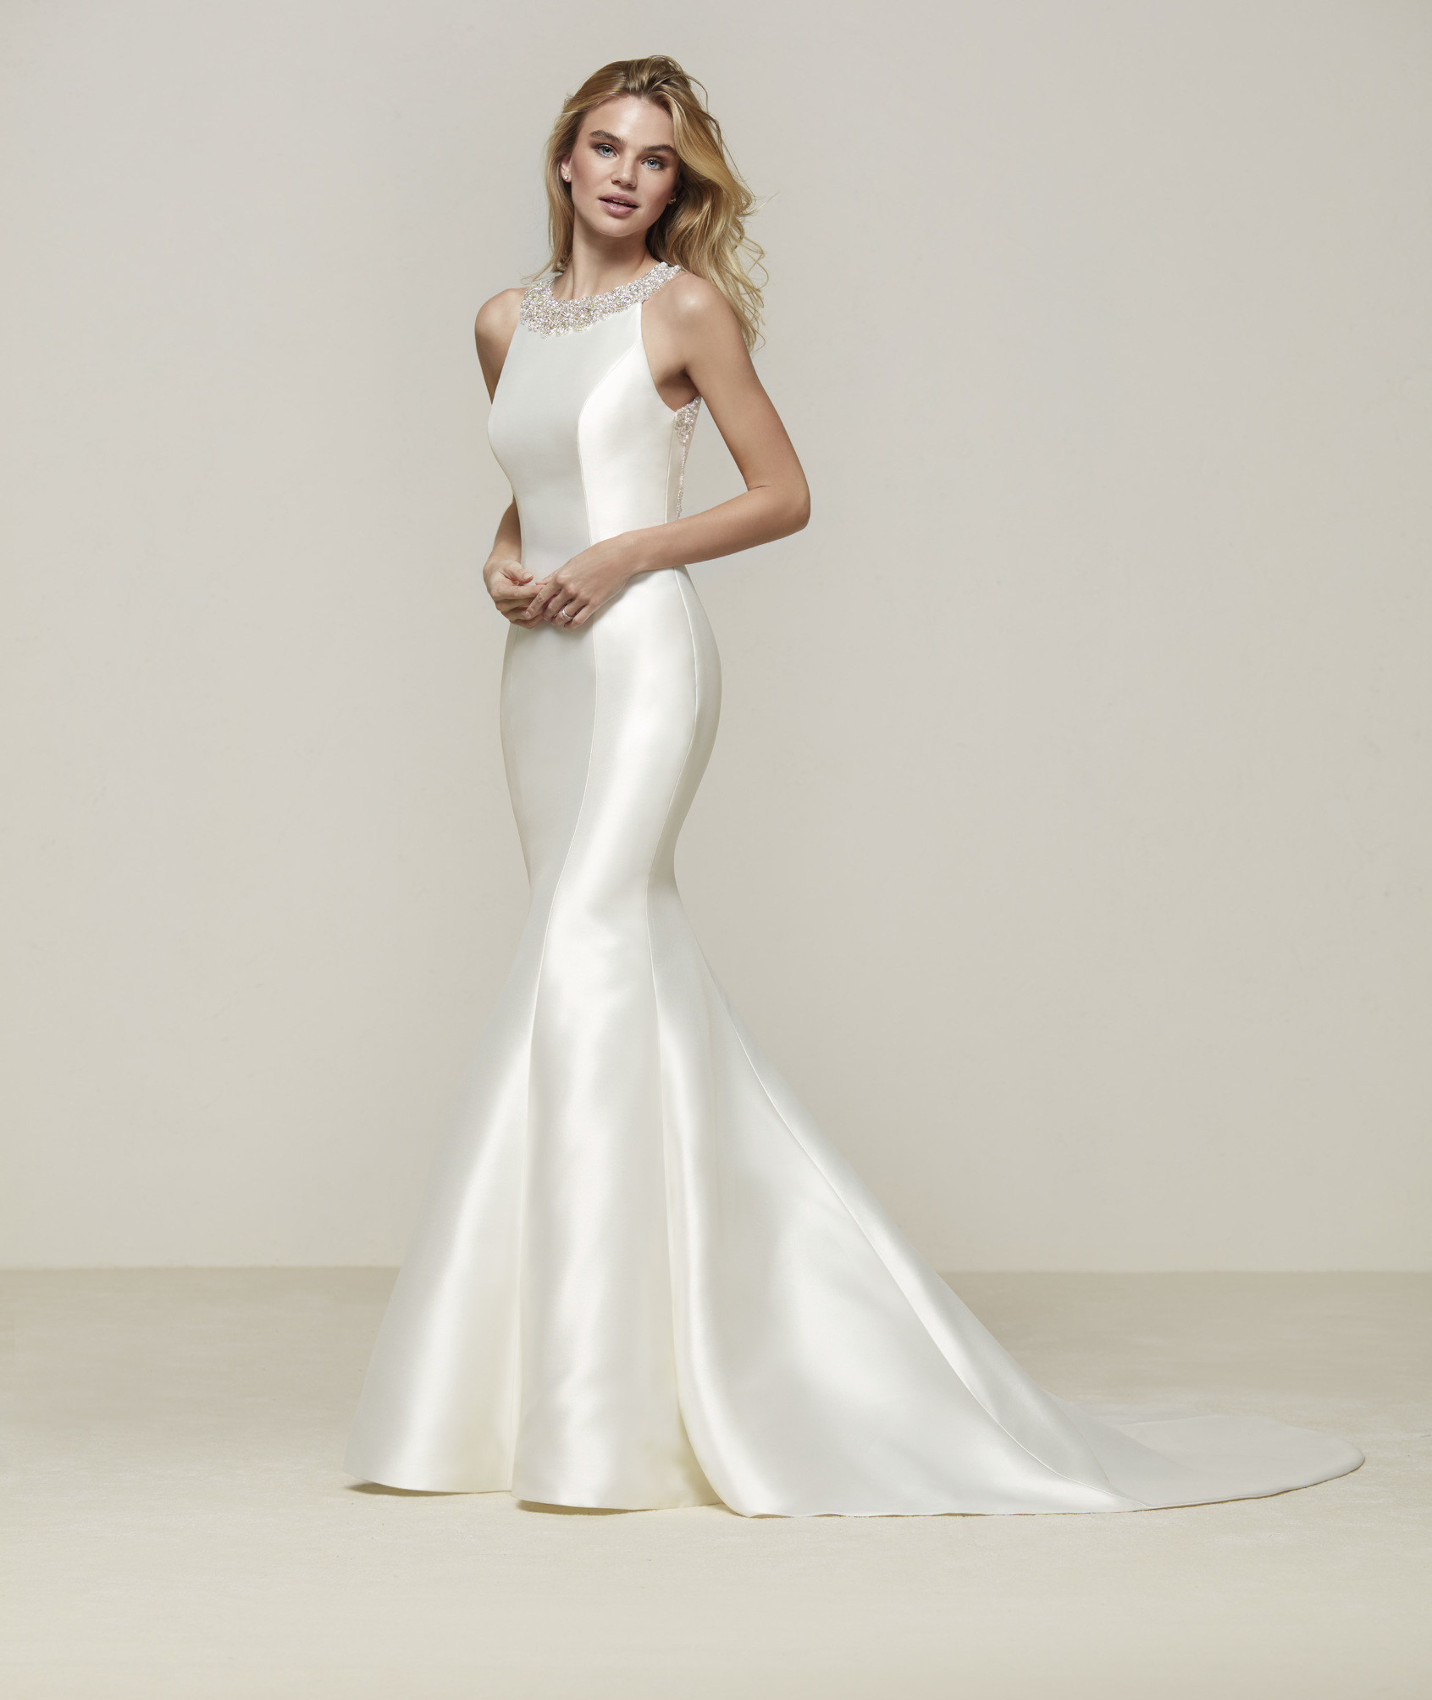 Drupa wedding dress